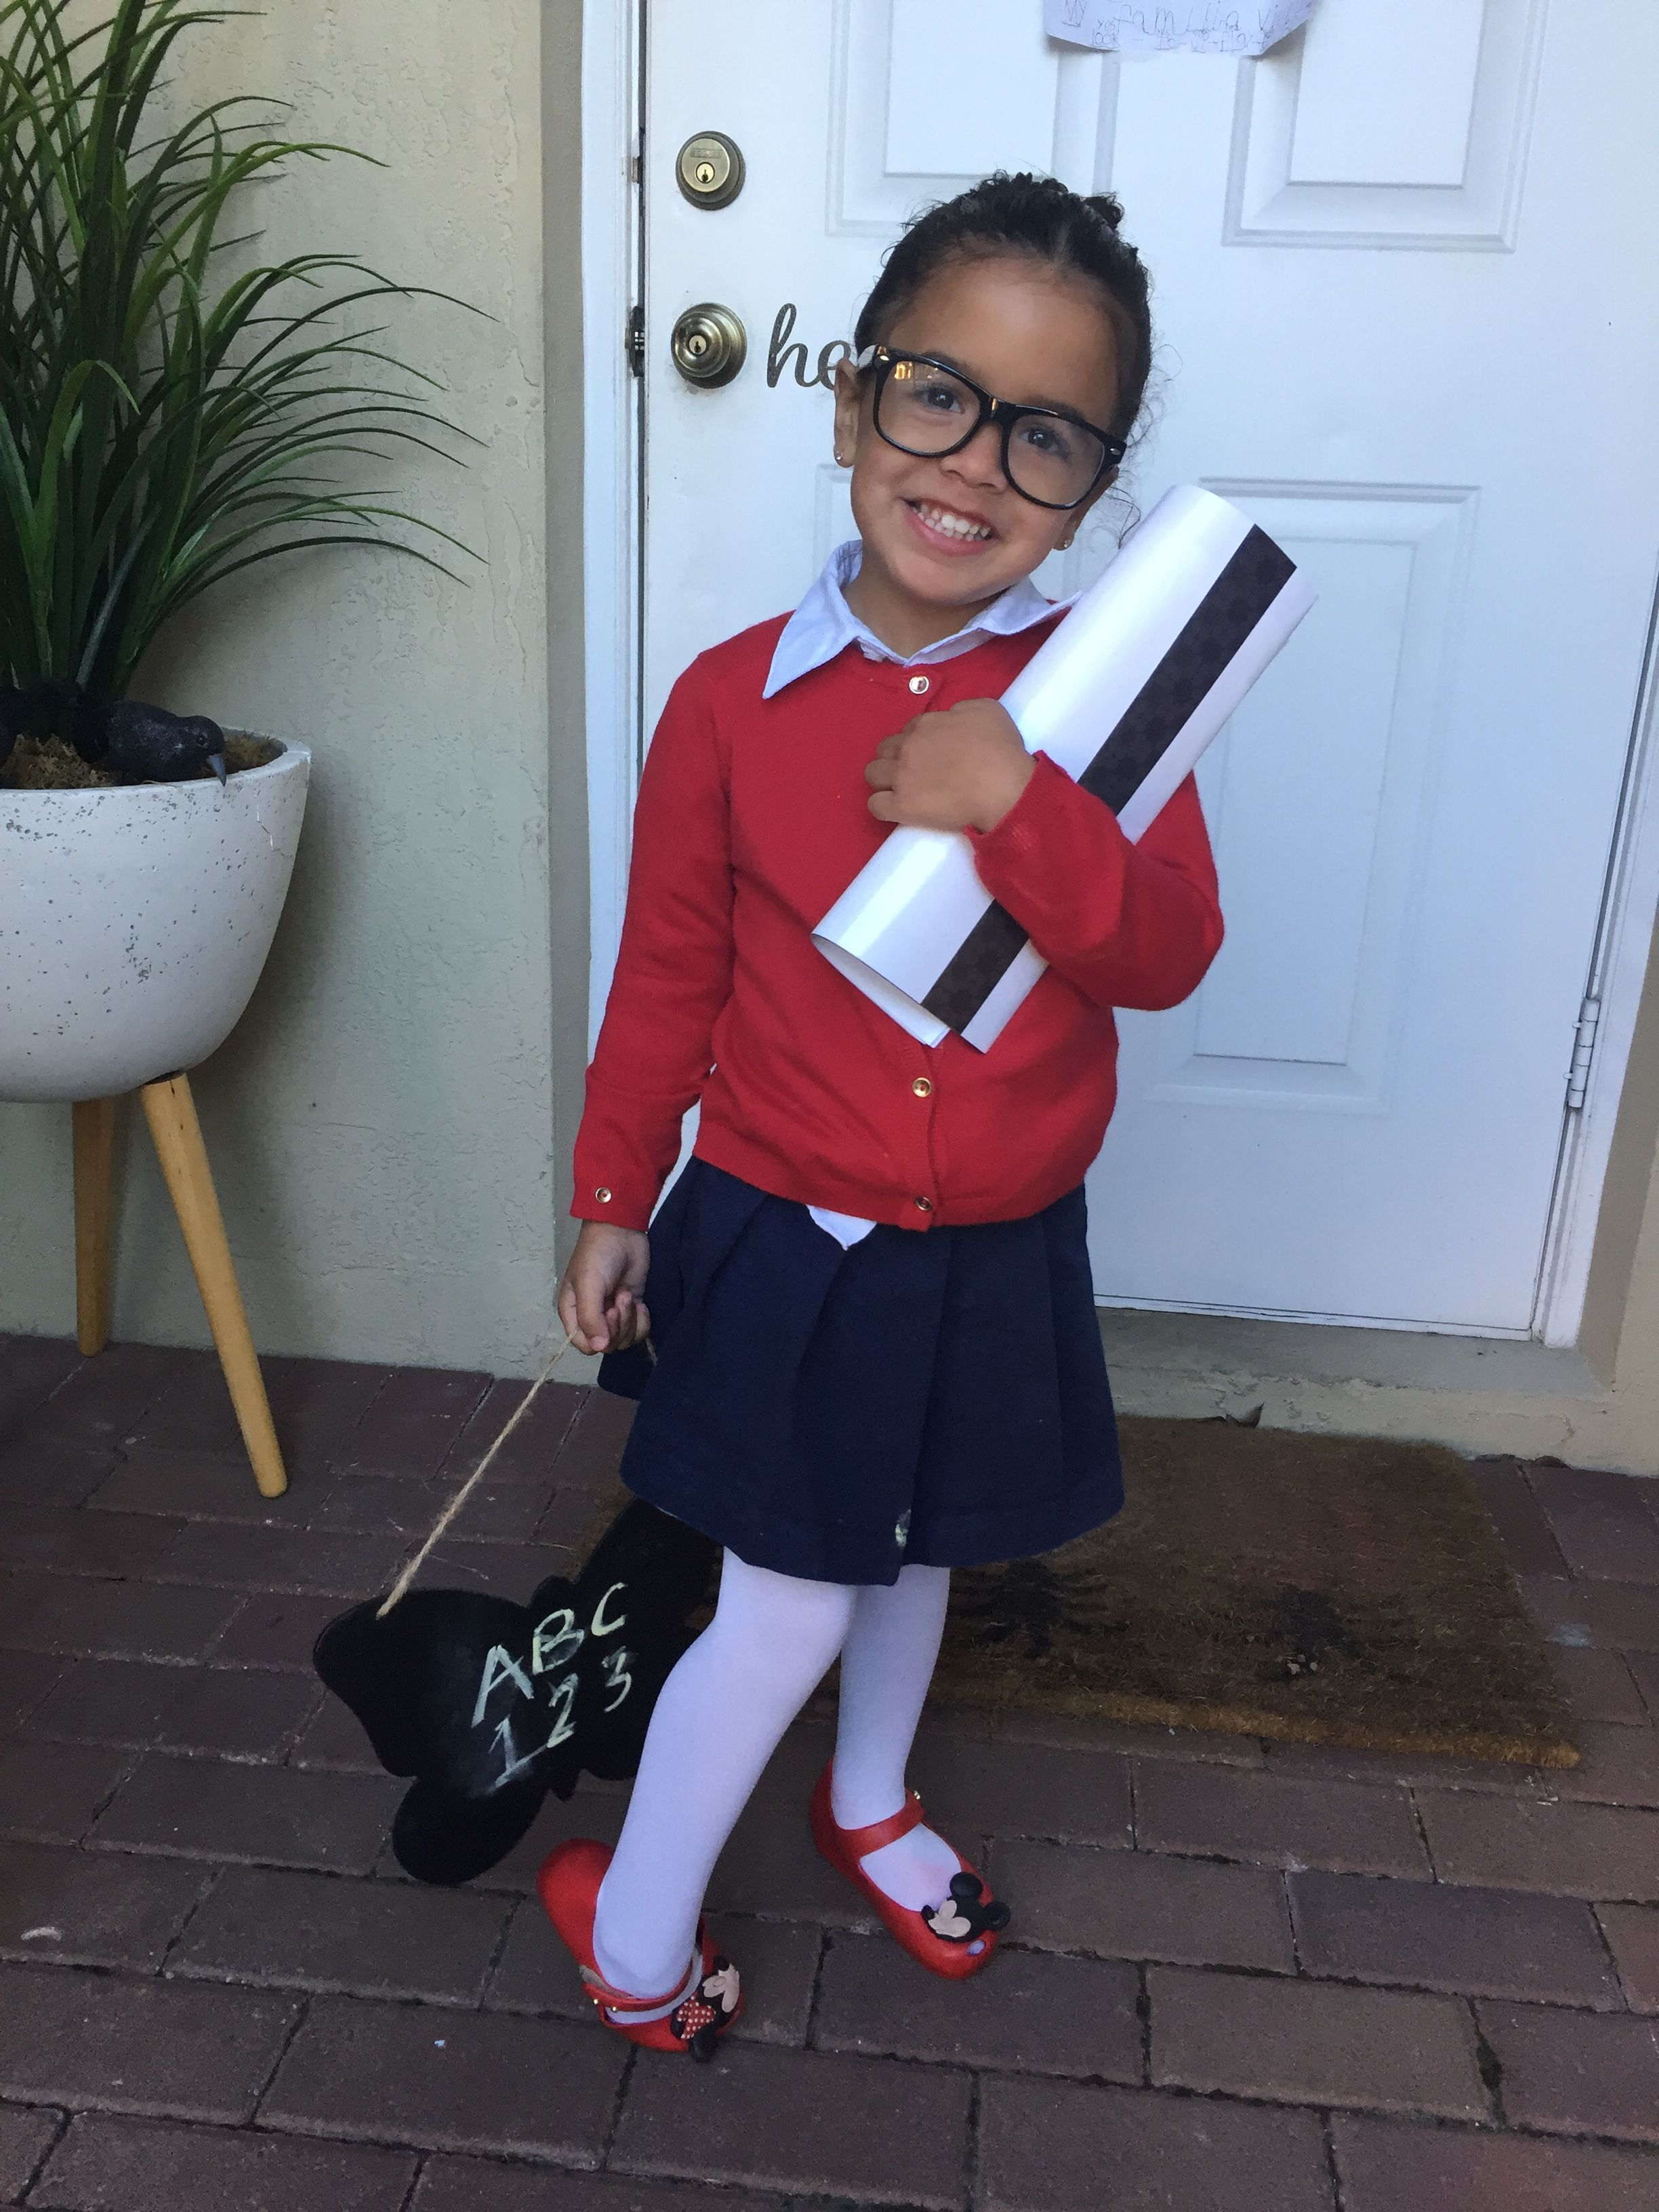 Halloween Or Career Day Teacher Costume Easy And Affordable Use The Clothes You Have At Home Add Glasses And A Teacher Costumes Career Costumes Dress Up Day